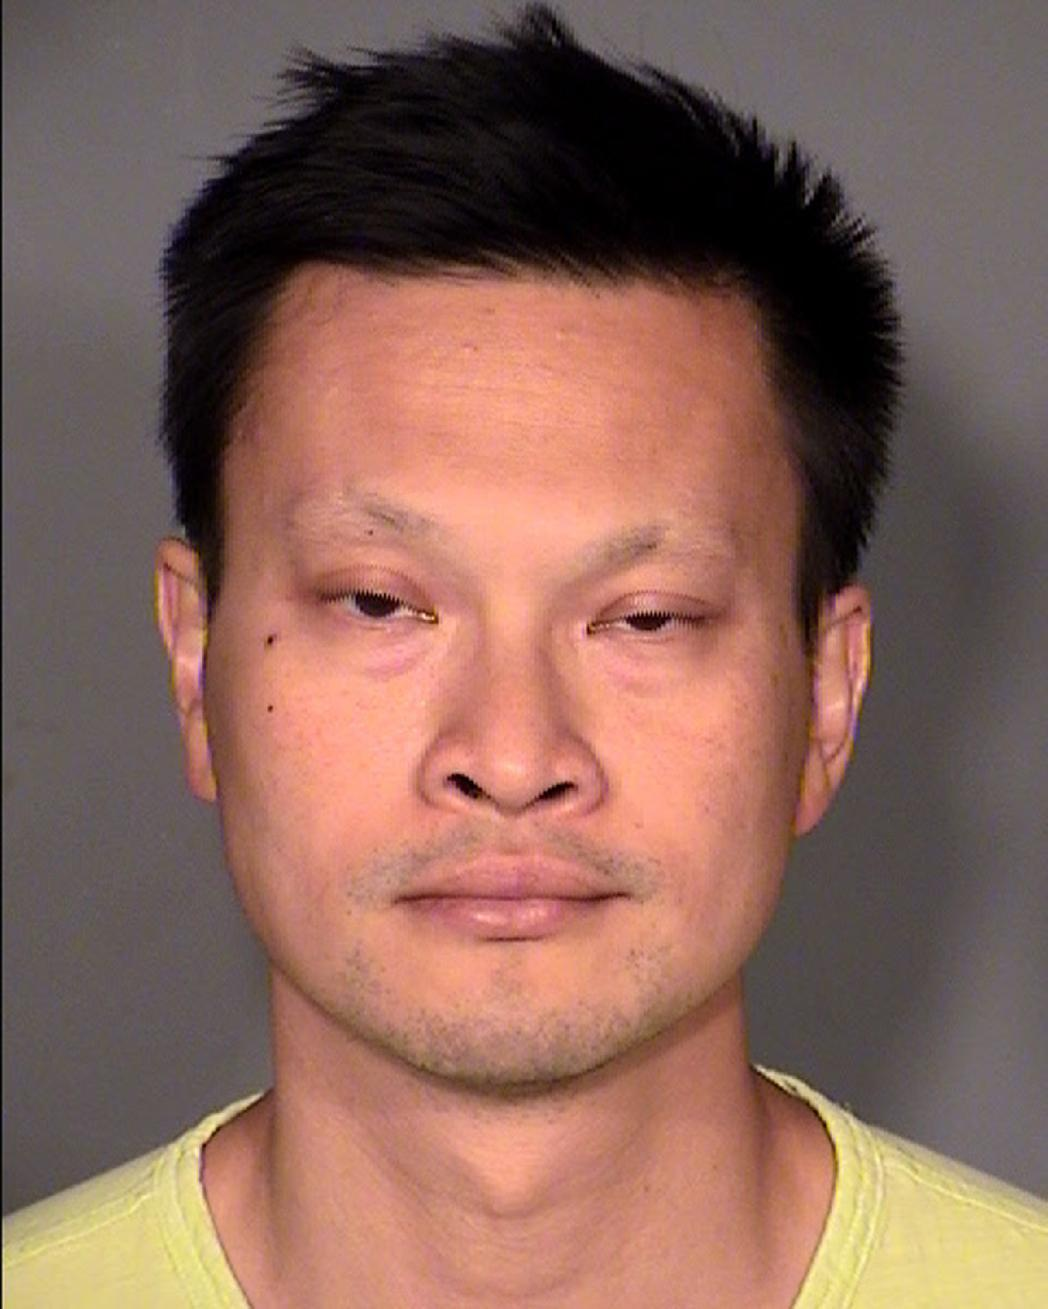 Las Vegas doctor denies sexually assaulting patients